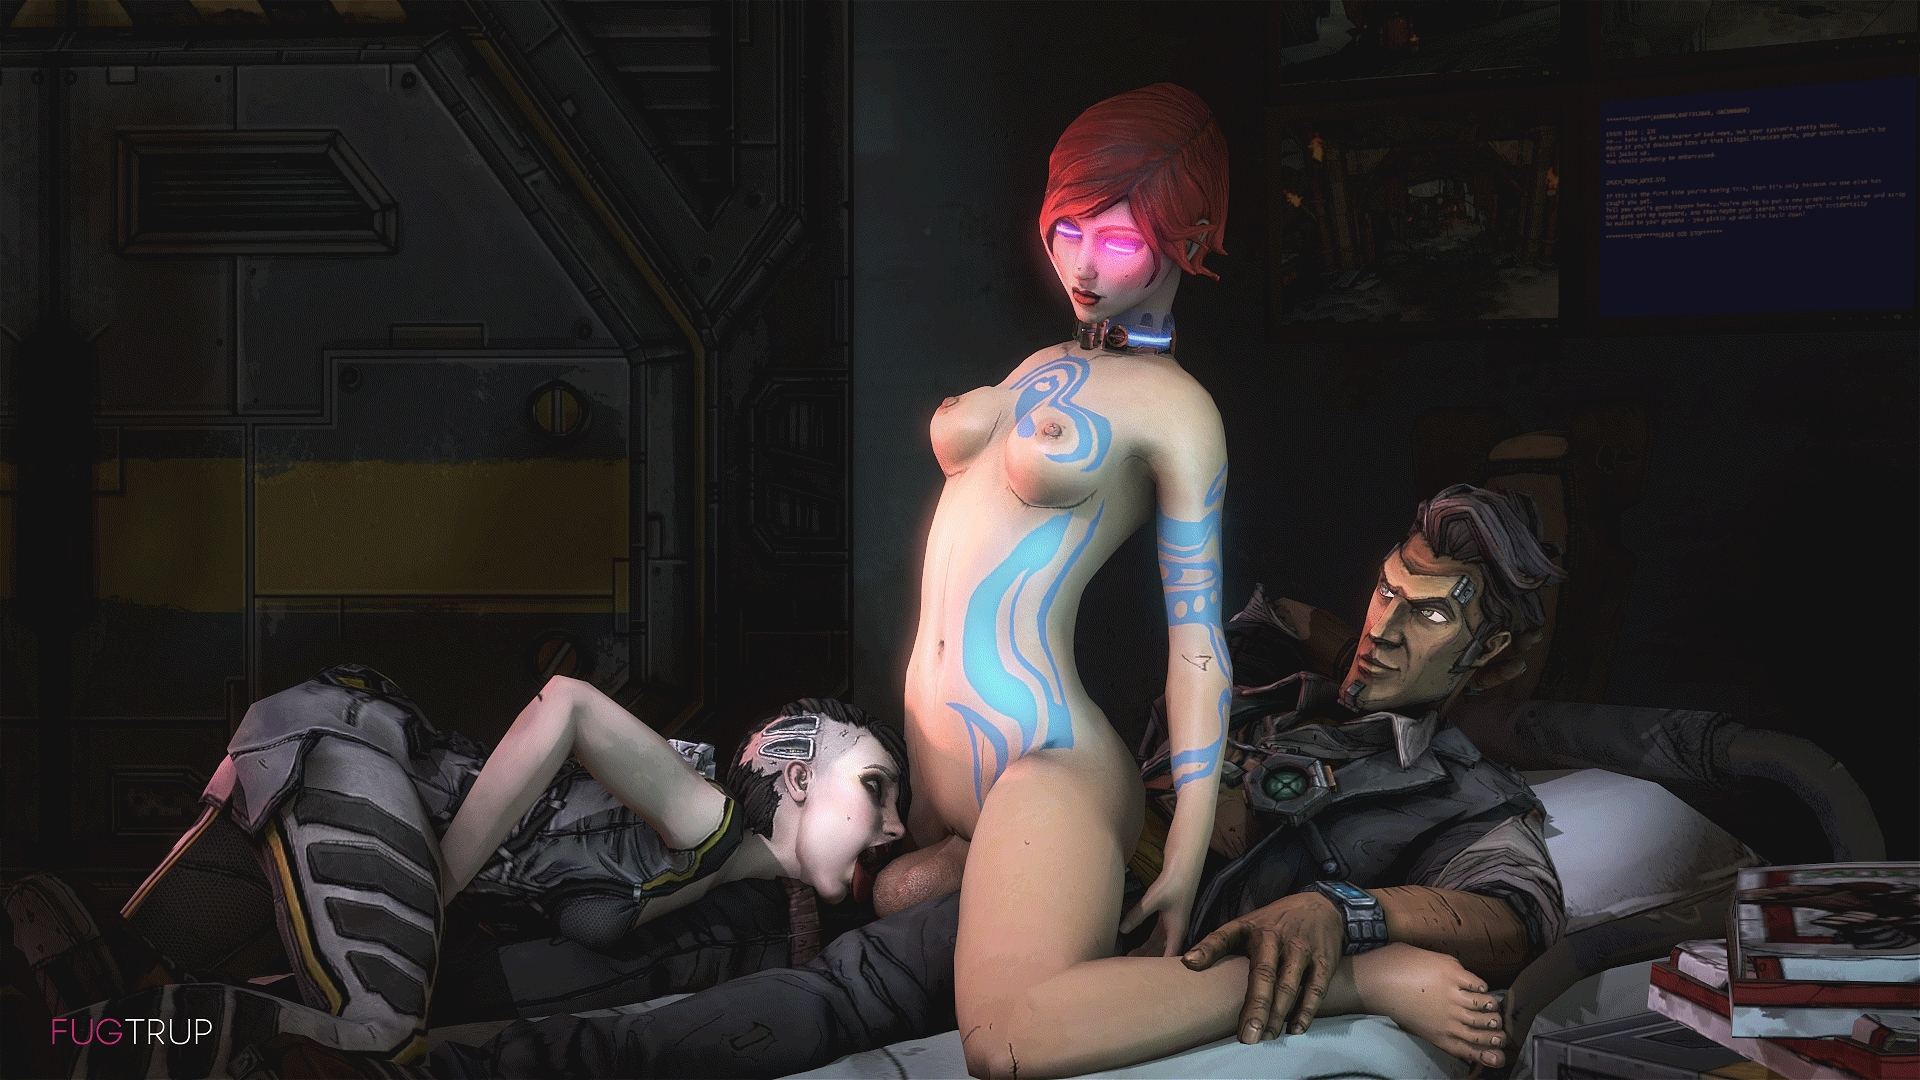 Borderlands sex animation erotic gallery